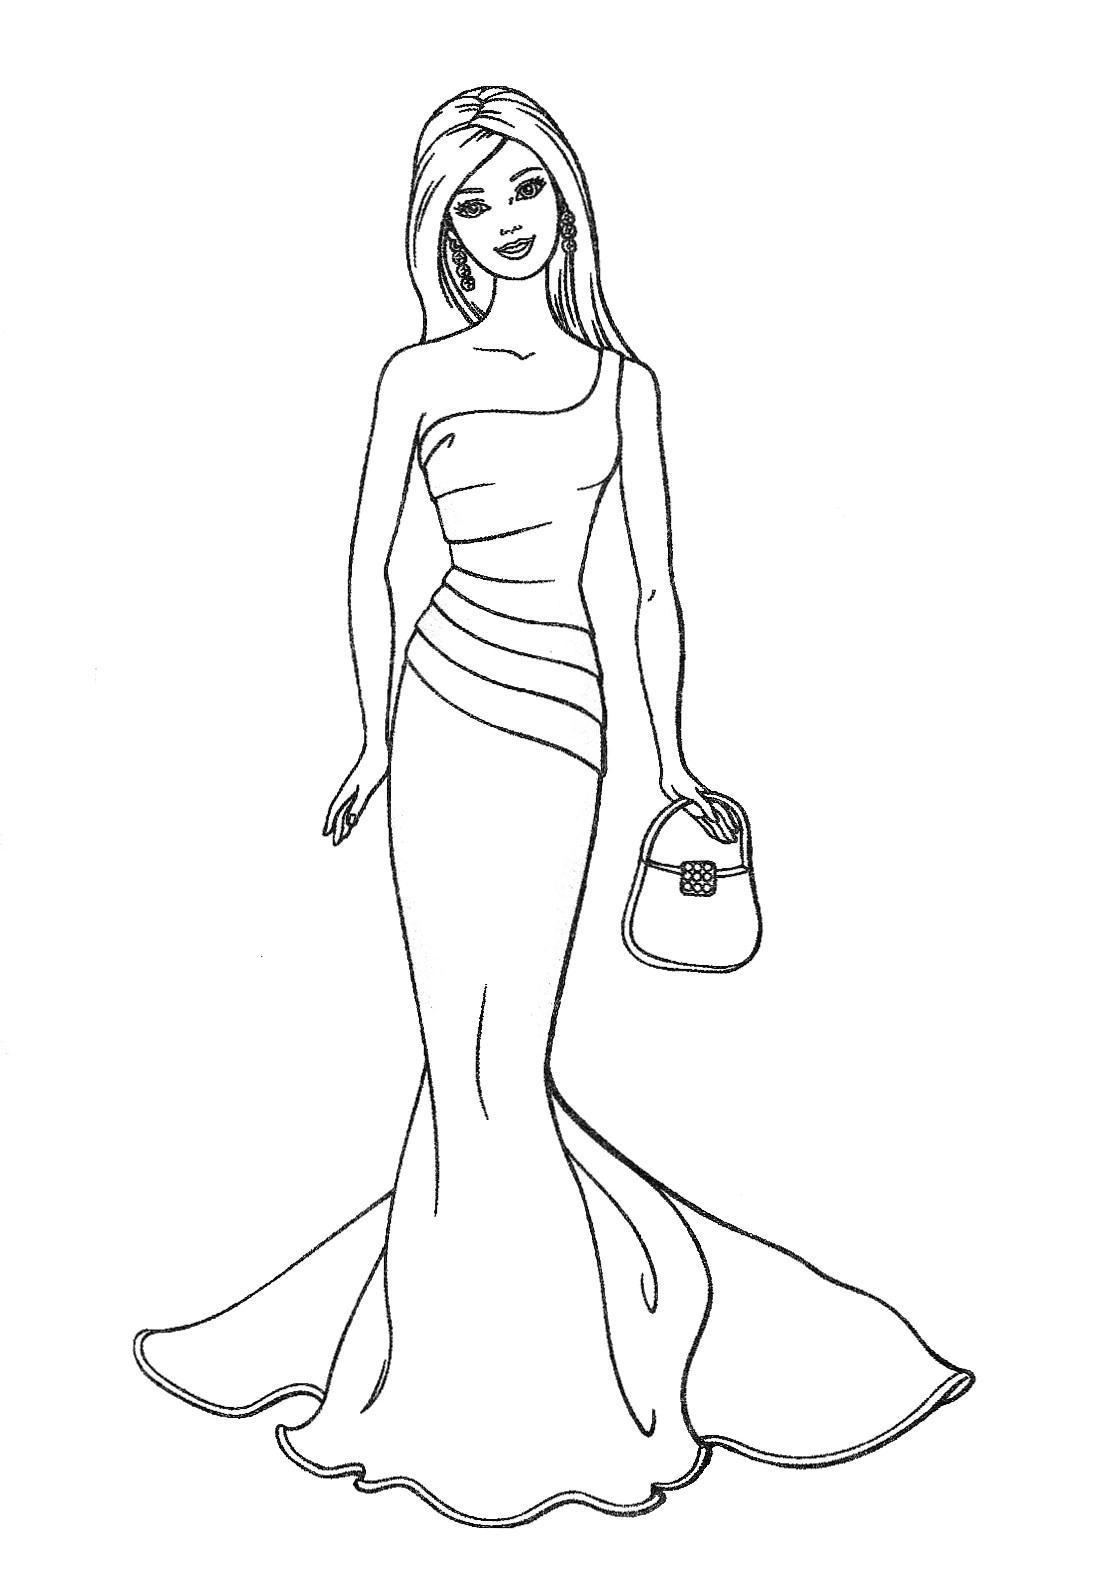 barbie coloring pages full size - photo#29